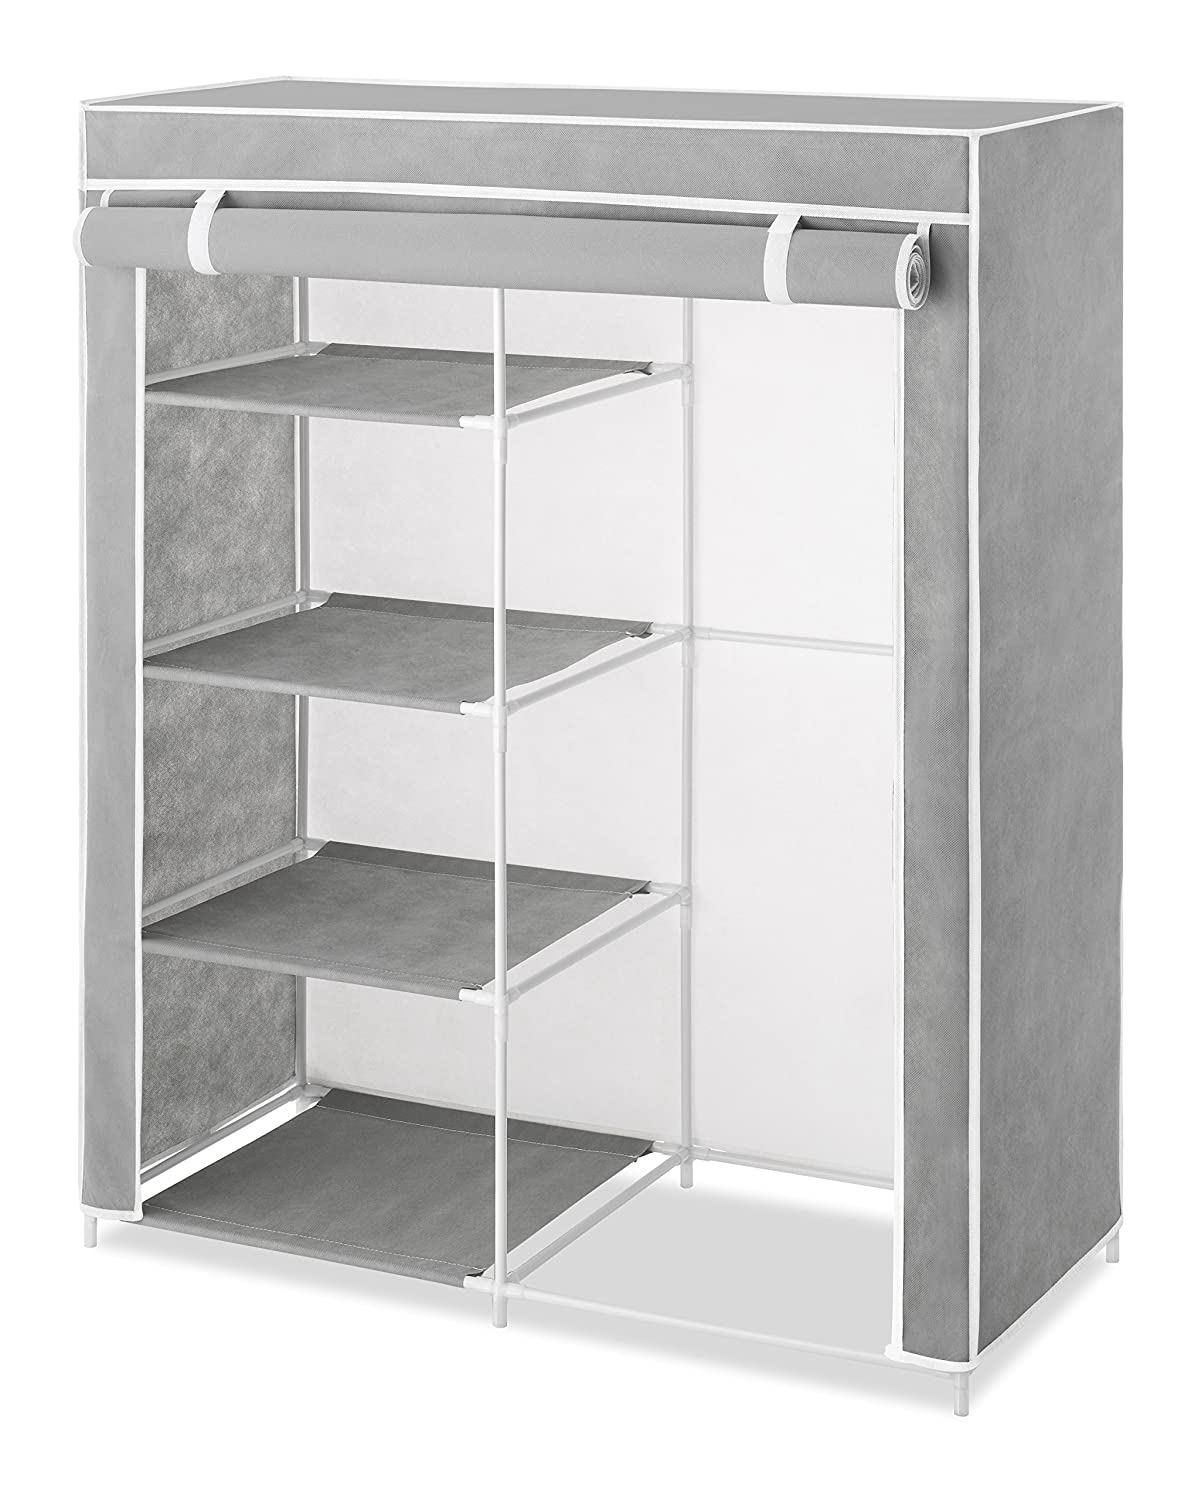 Whitmor Compact Covered Clothes Closet 6091-7151